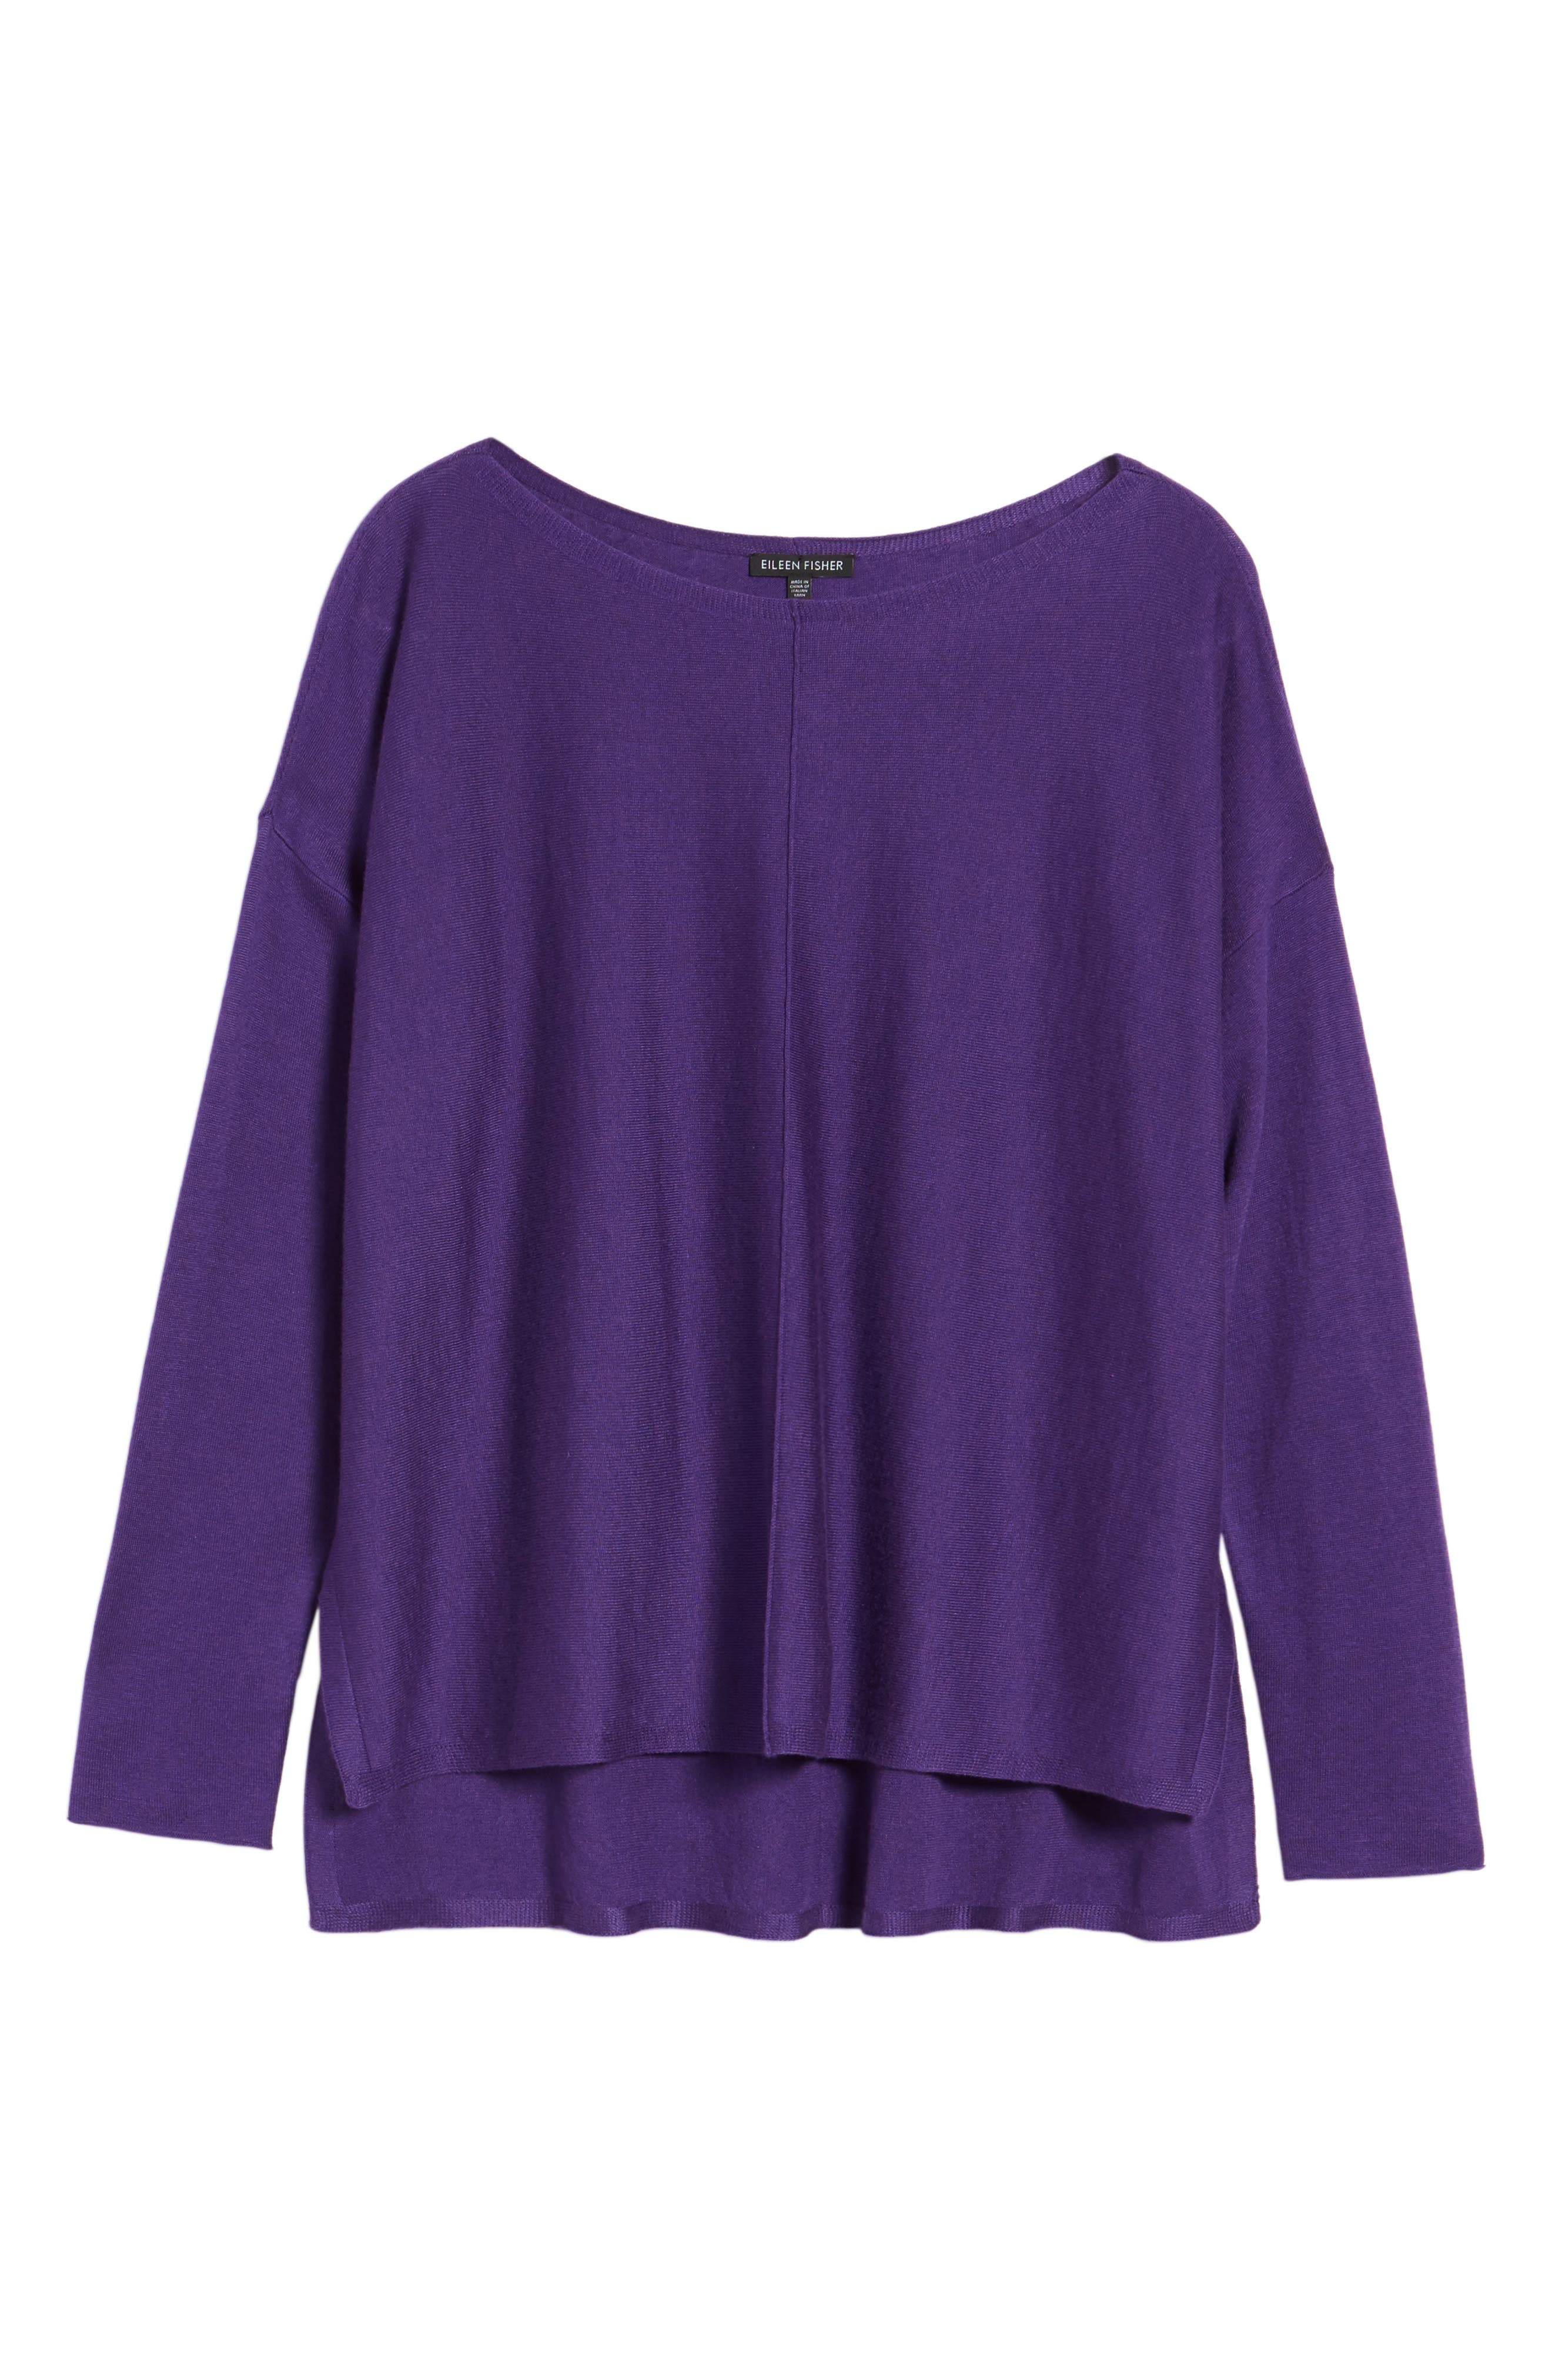 Tencel<sup>®</sup> Lyocell Blend High/Low Sweater,                             Alternate thumbnail 6, color,                             Ultraviolet